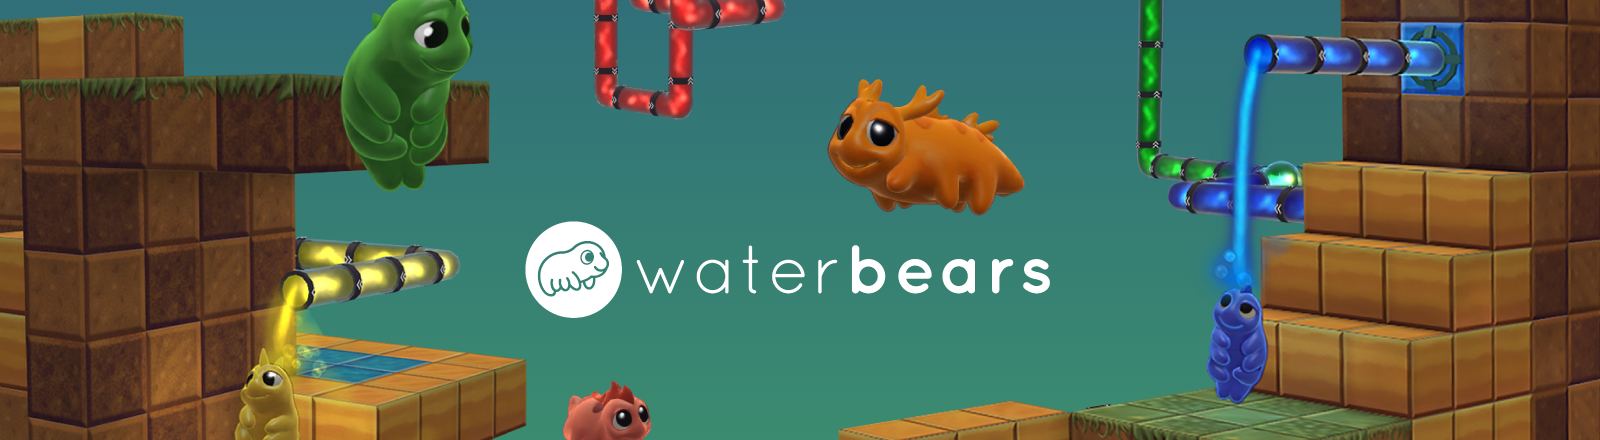 Re-hydrate all Water Bears!